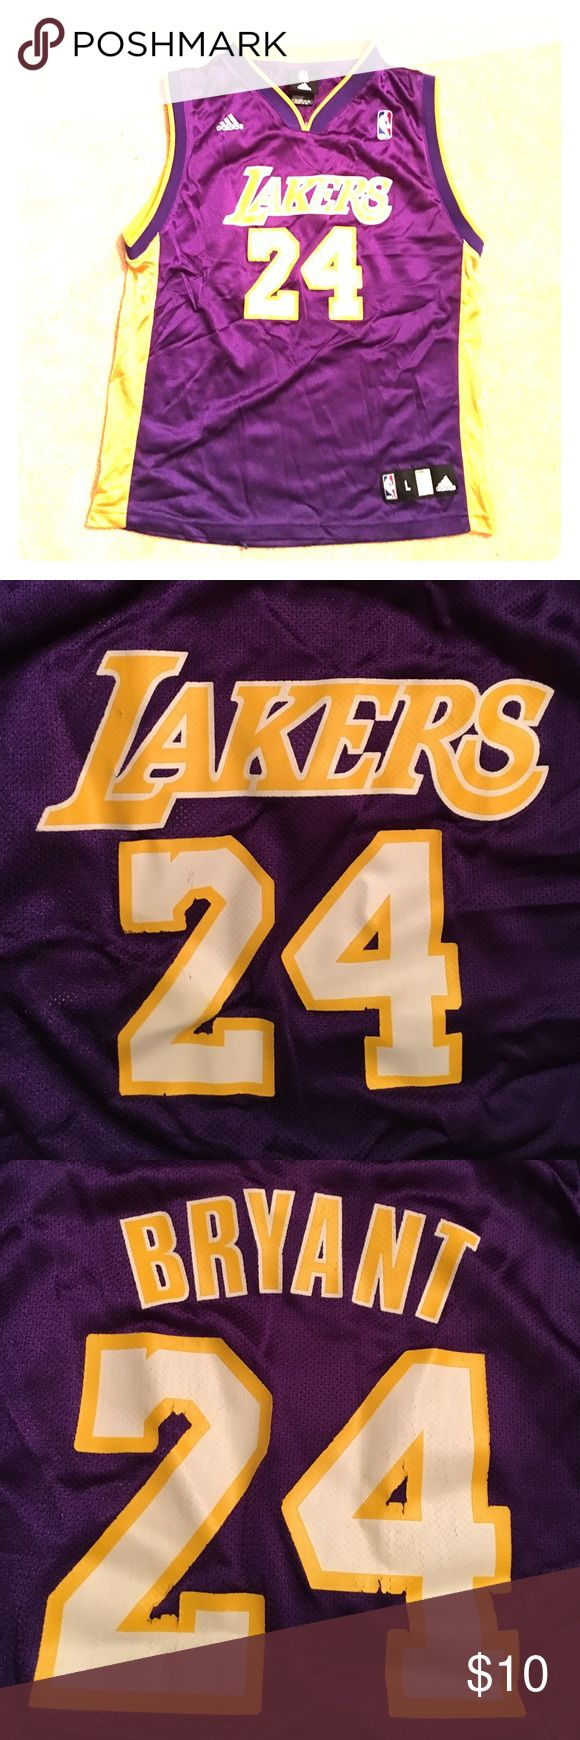 🔸NEW LISTING🔸Lakers - Kobe Bryant jersey Youth gently used Kobe Bryant jersey. The prints are slightly worn as pictured, but hardly noticeable unless you're really looking. 100% nylon, mesh-type material. Very lightweight and comfortable. Sized Youth L (14-16) but will fit men's XS. Adidas Shirts & Tops